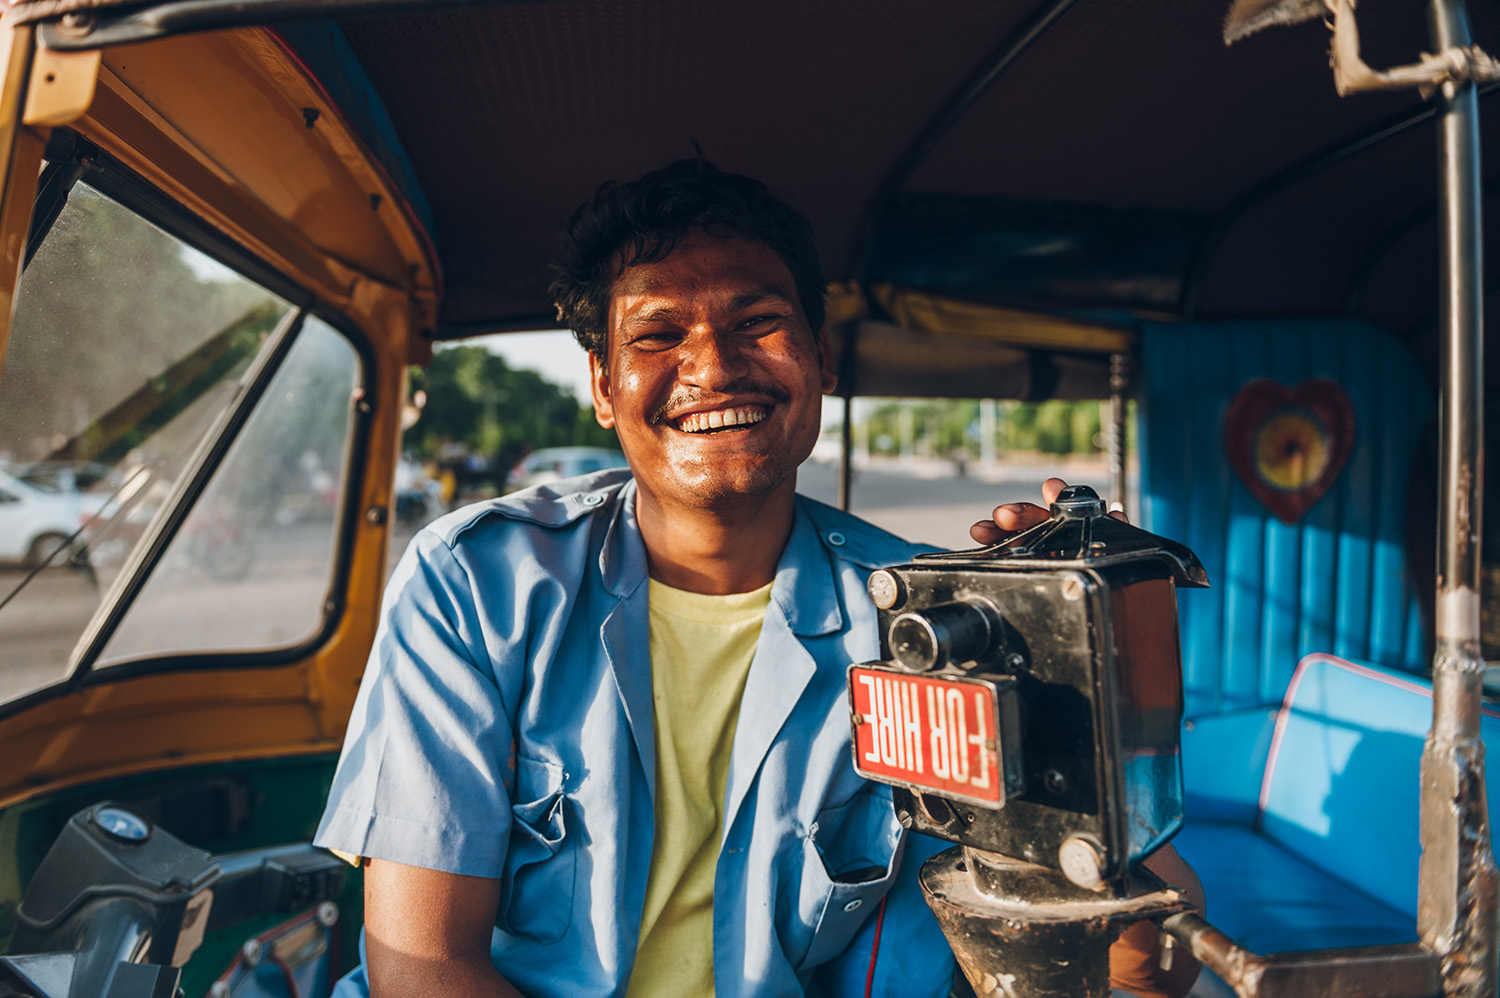 travel-photography-asia-india-portrait-rickshaw-driver.jpg